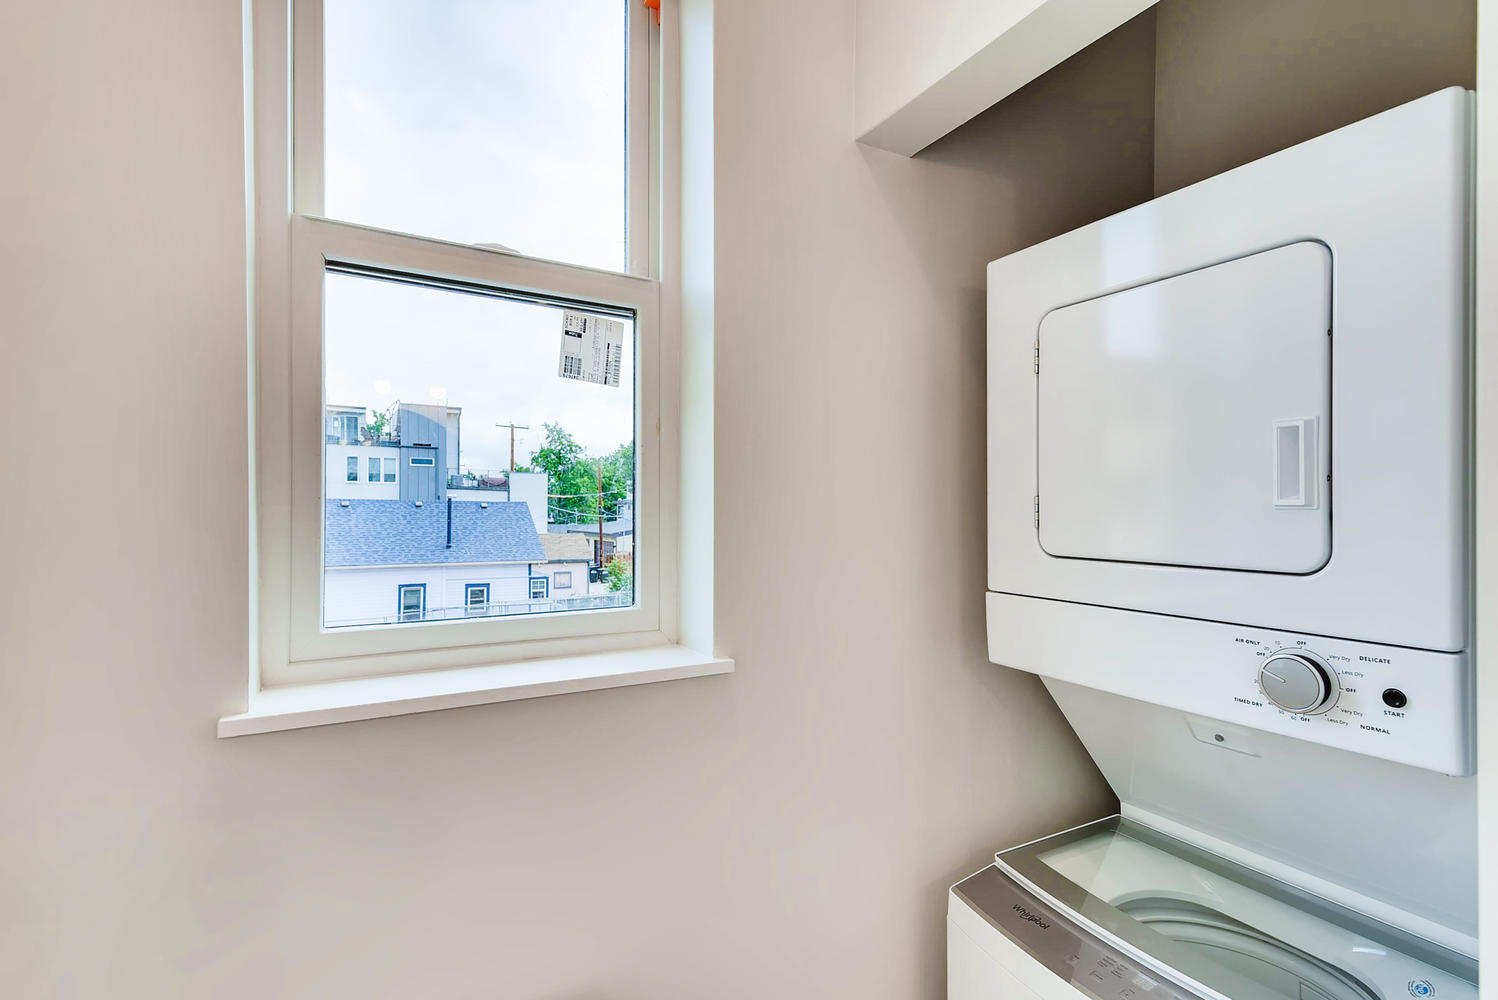 4432 Tennyson Unit 6 Denver CO-large-023-015-2nd Floor Laundry Room-1499x1000-72dpi